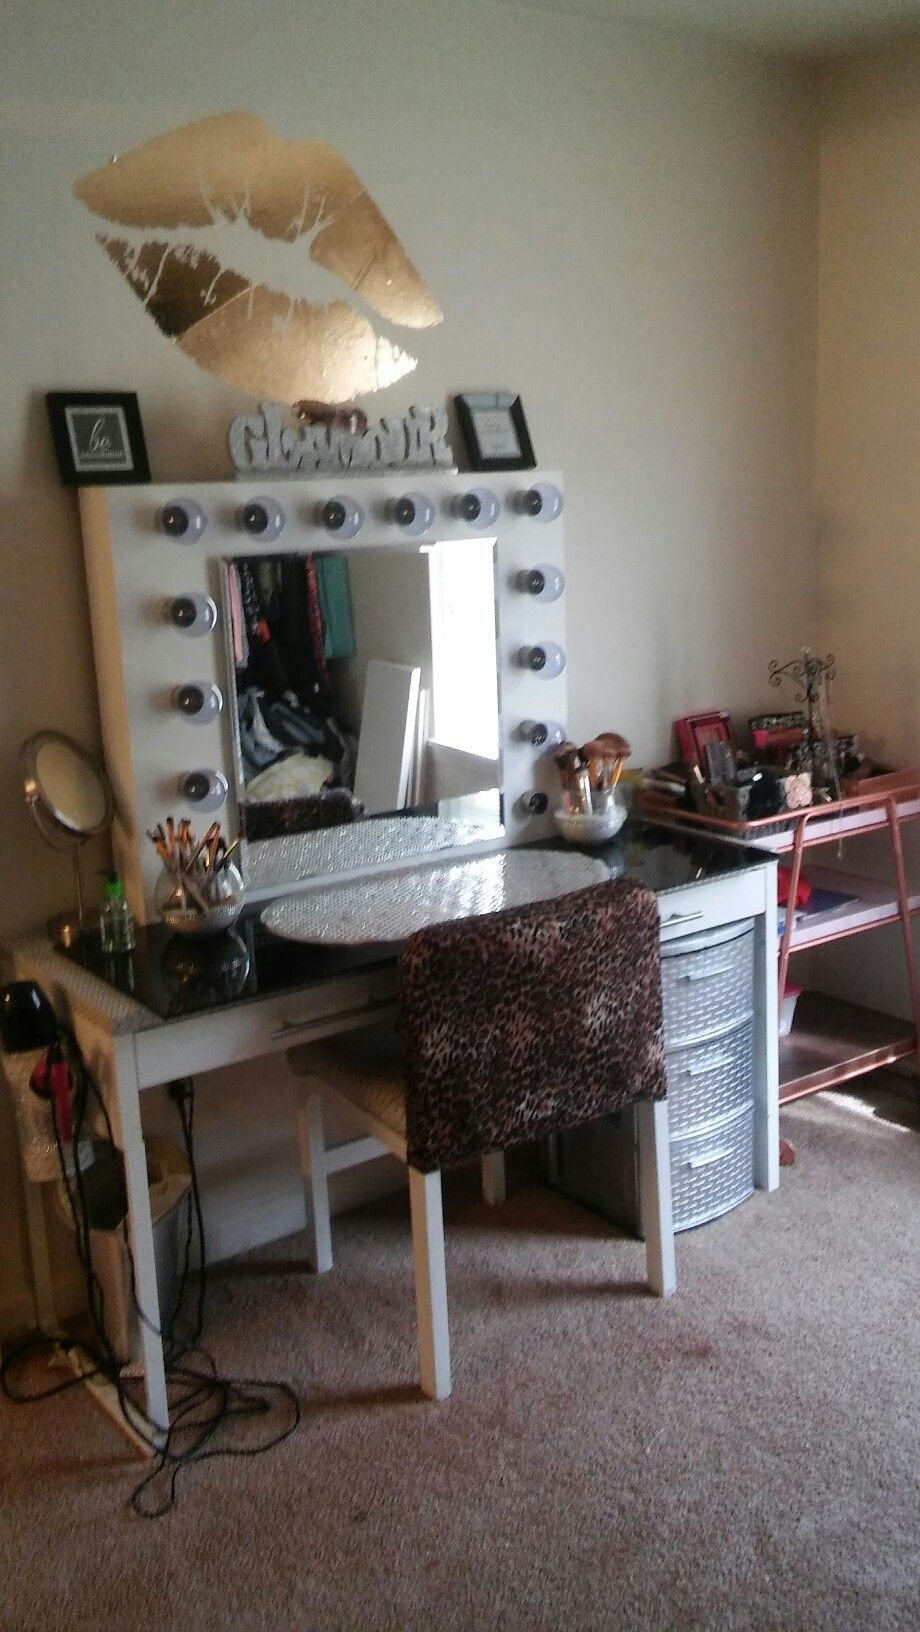 Ikea Micke Desk Hack To Makeup Hollywood Style Vanity Ikea Micke Desk Ikea Micke Desk Hacks